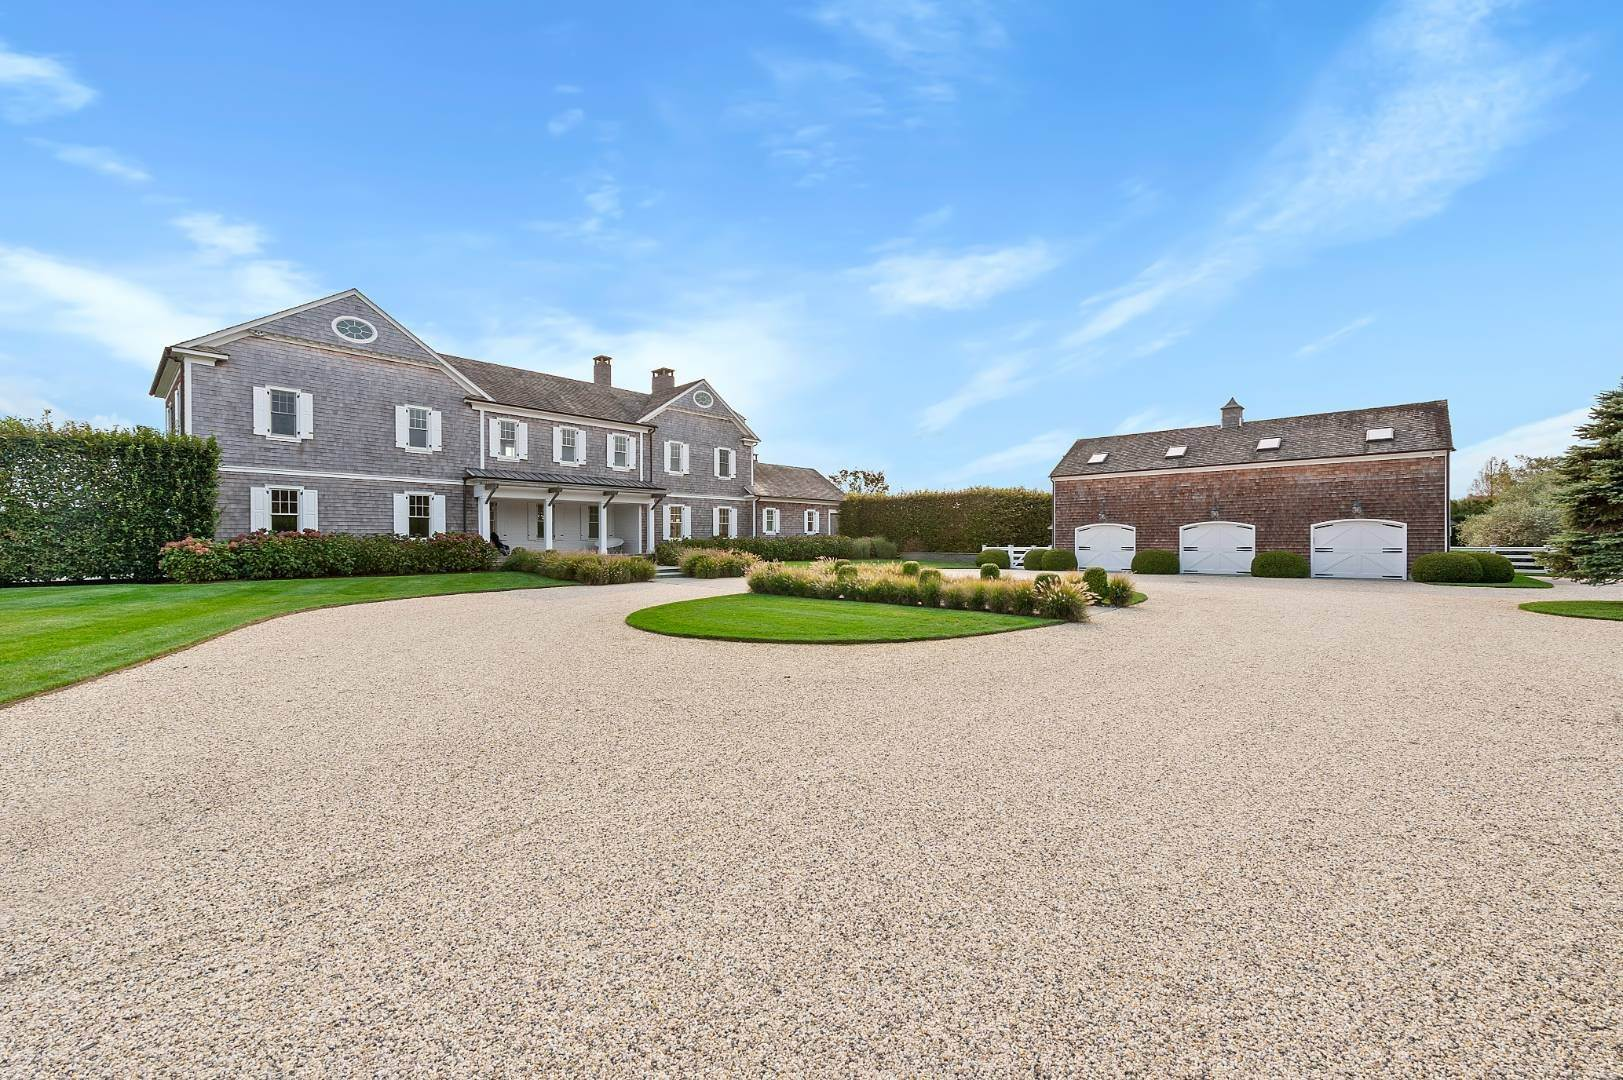 Single Family Home for Sale at Stunning Sagaponack South 840 Sagg Main Street, Sagaponack Village, NY 11962